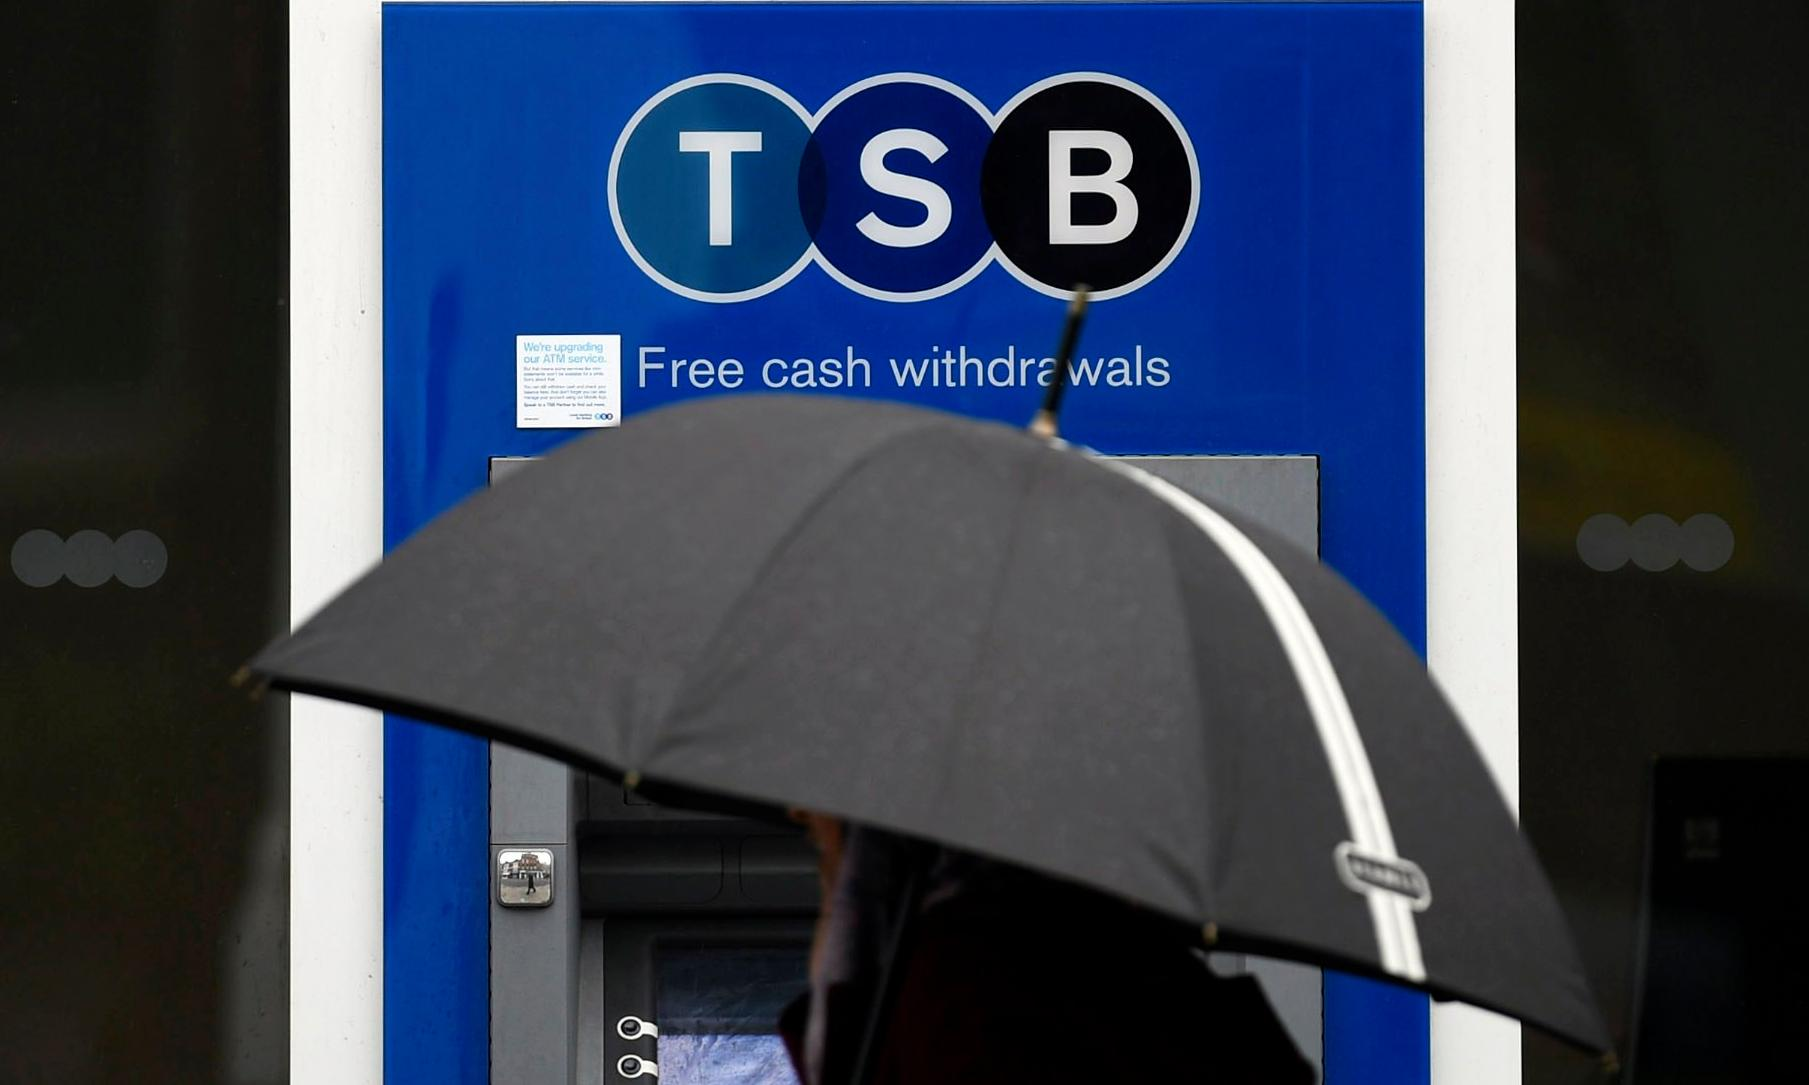 TSB lacked common sense in run-up to IT meltdown, says report